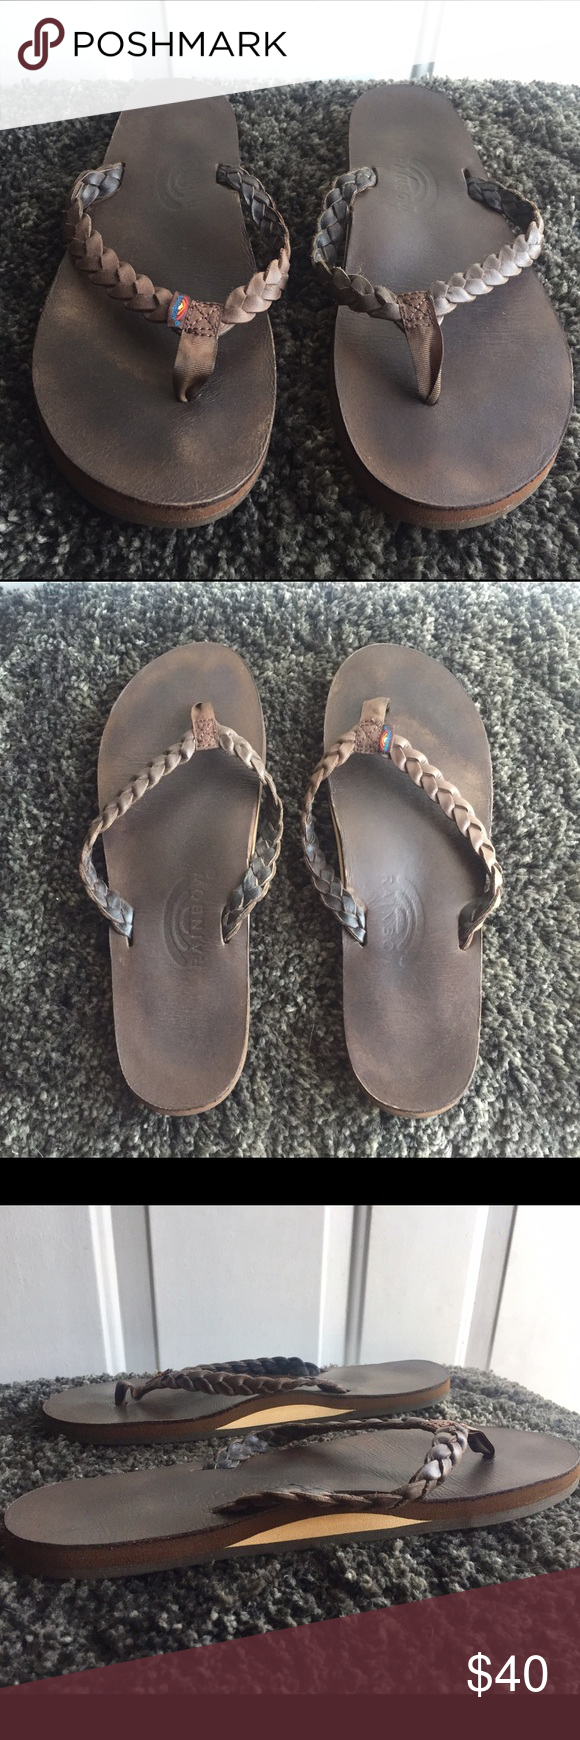 239d9827b7e8c Rainbow Sandals - Twisted Sister 🌈 These are the